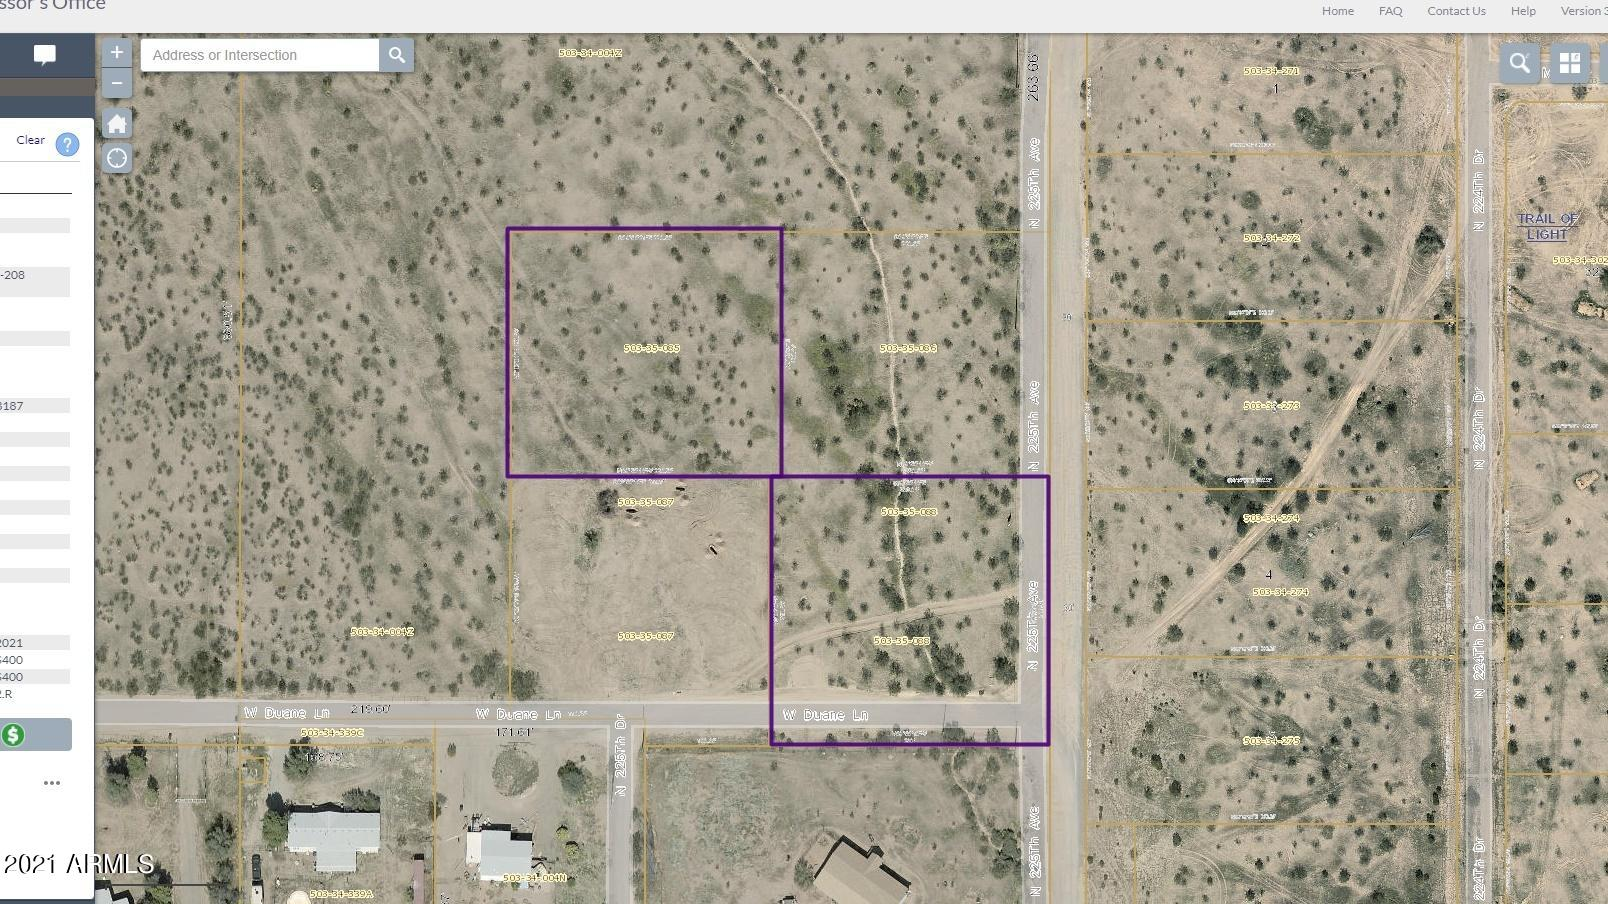 225X2 W Duane Lane # 4, Wittmann, AZ 85361, ,Land,For Sale,225X2 W Duane Lane # 4,6208276